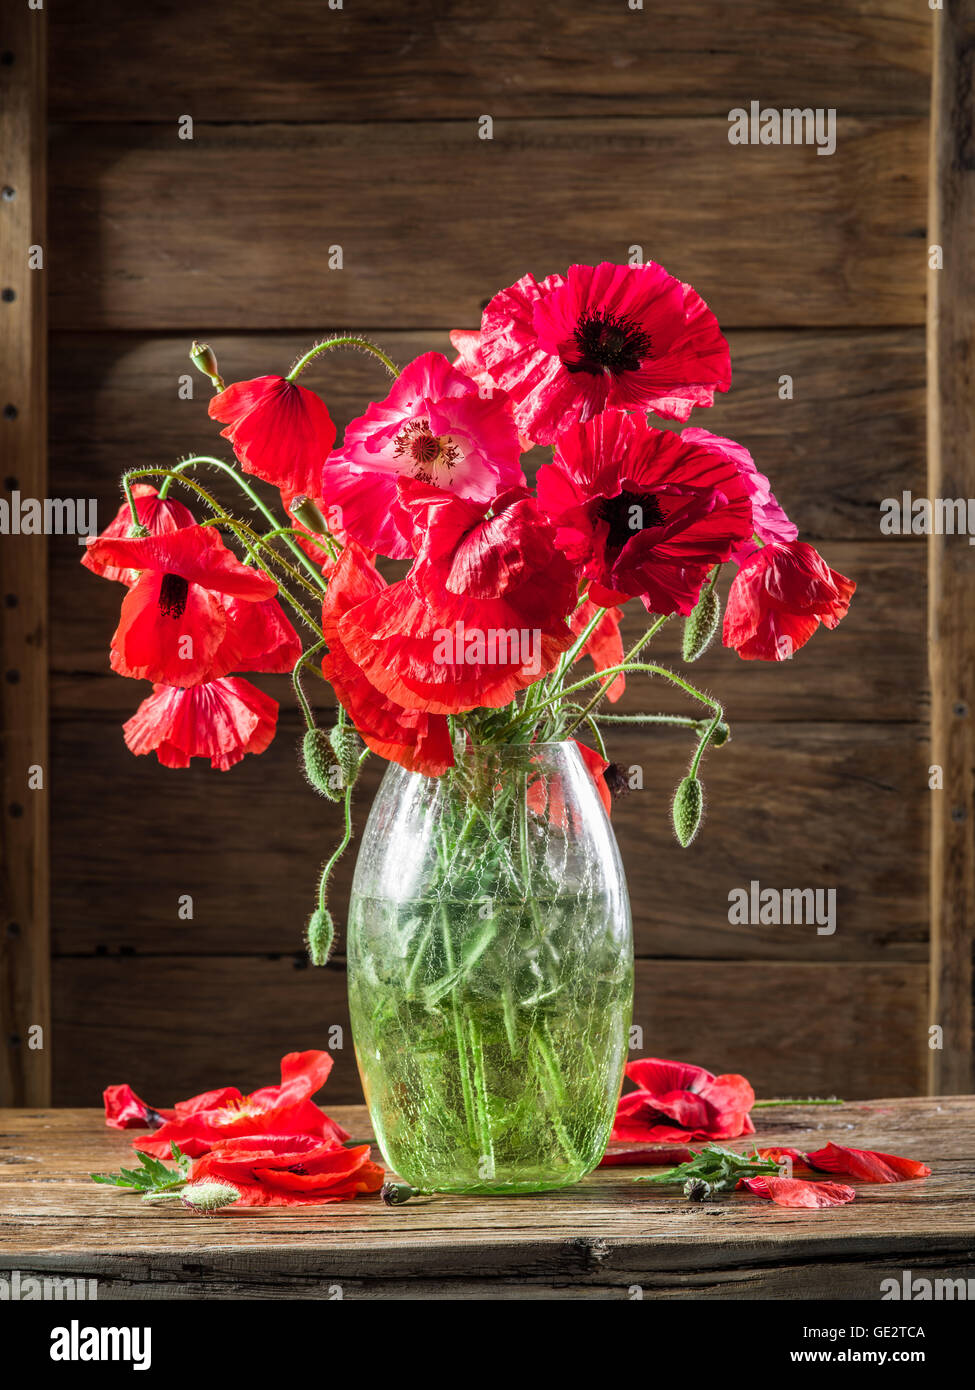 Bouquet Of Poppy Flowers In The Vase On The Wooden Table Stock Photo